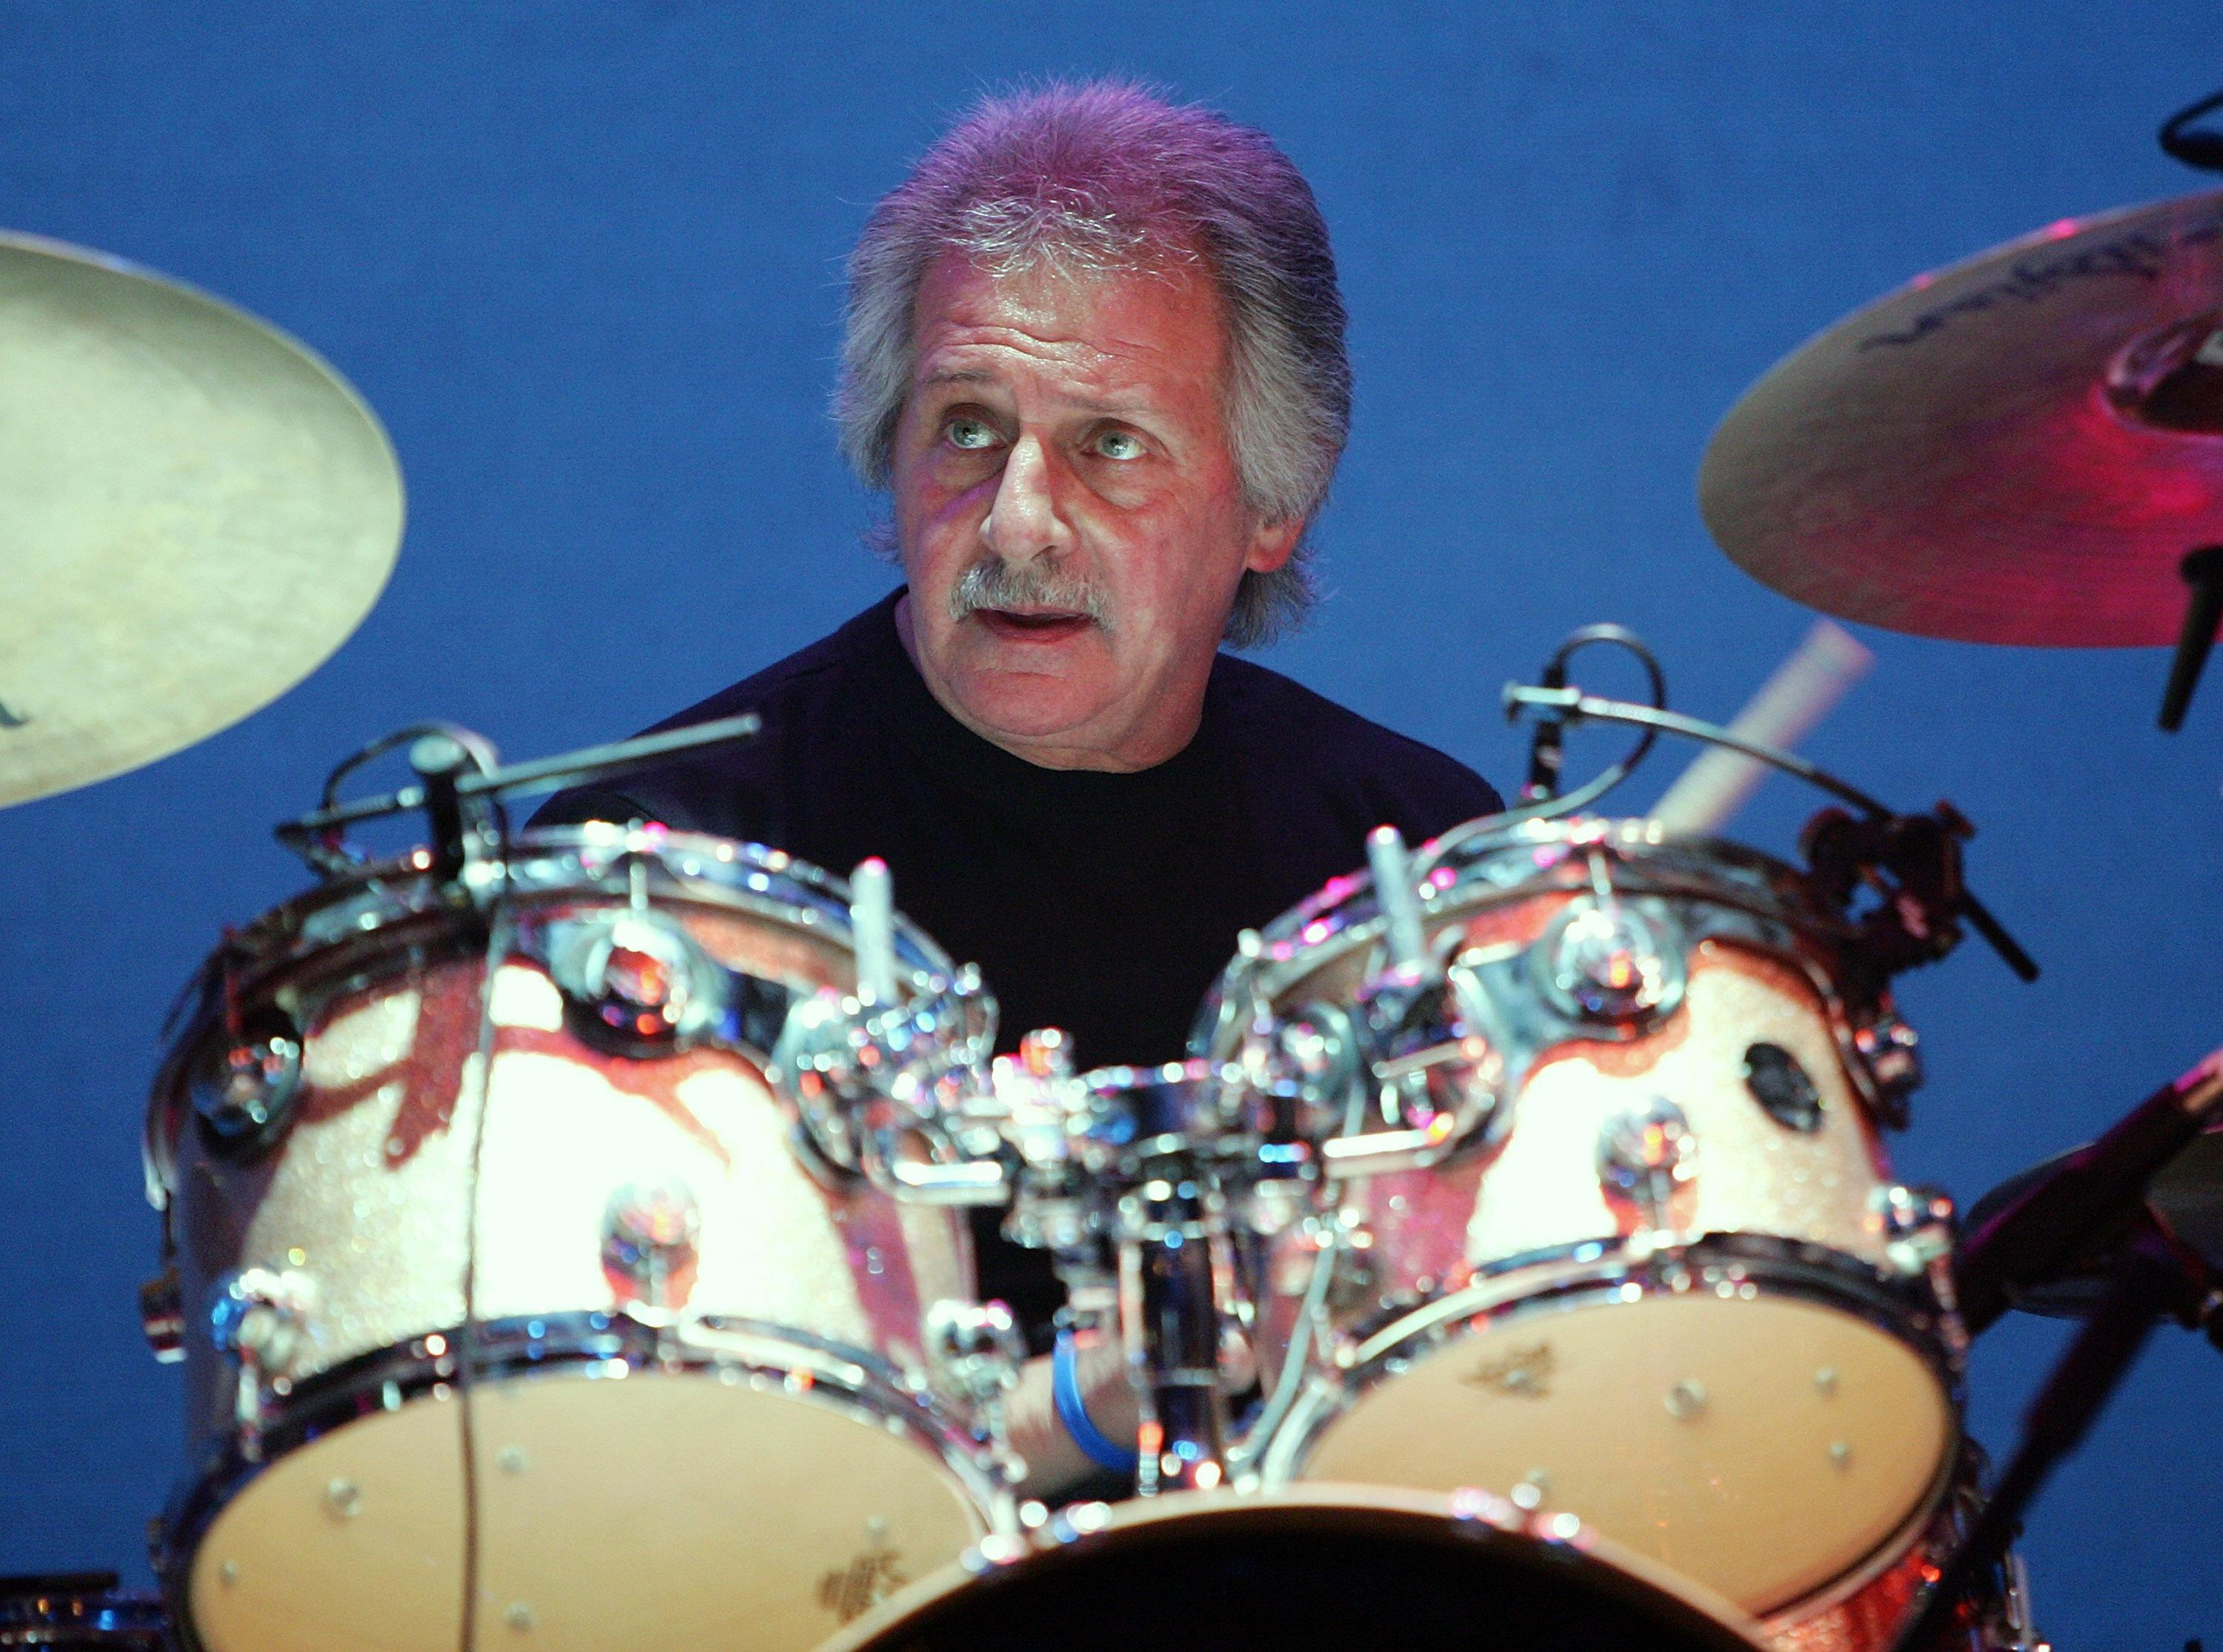 Original Beatles drummer Pete Best wishes replacement Ringo Starr a happy 80th birthday: 'Why not'